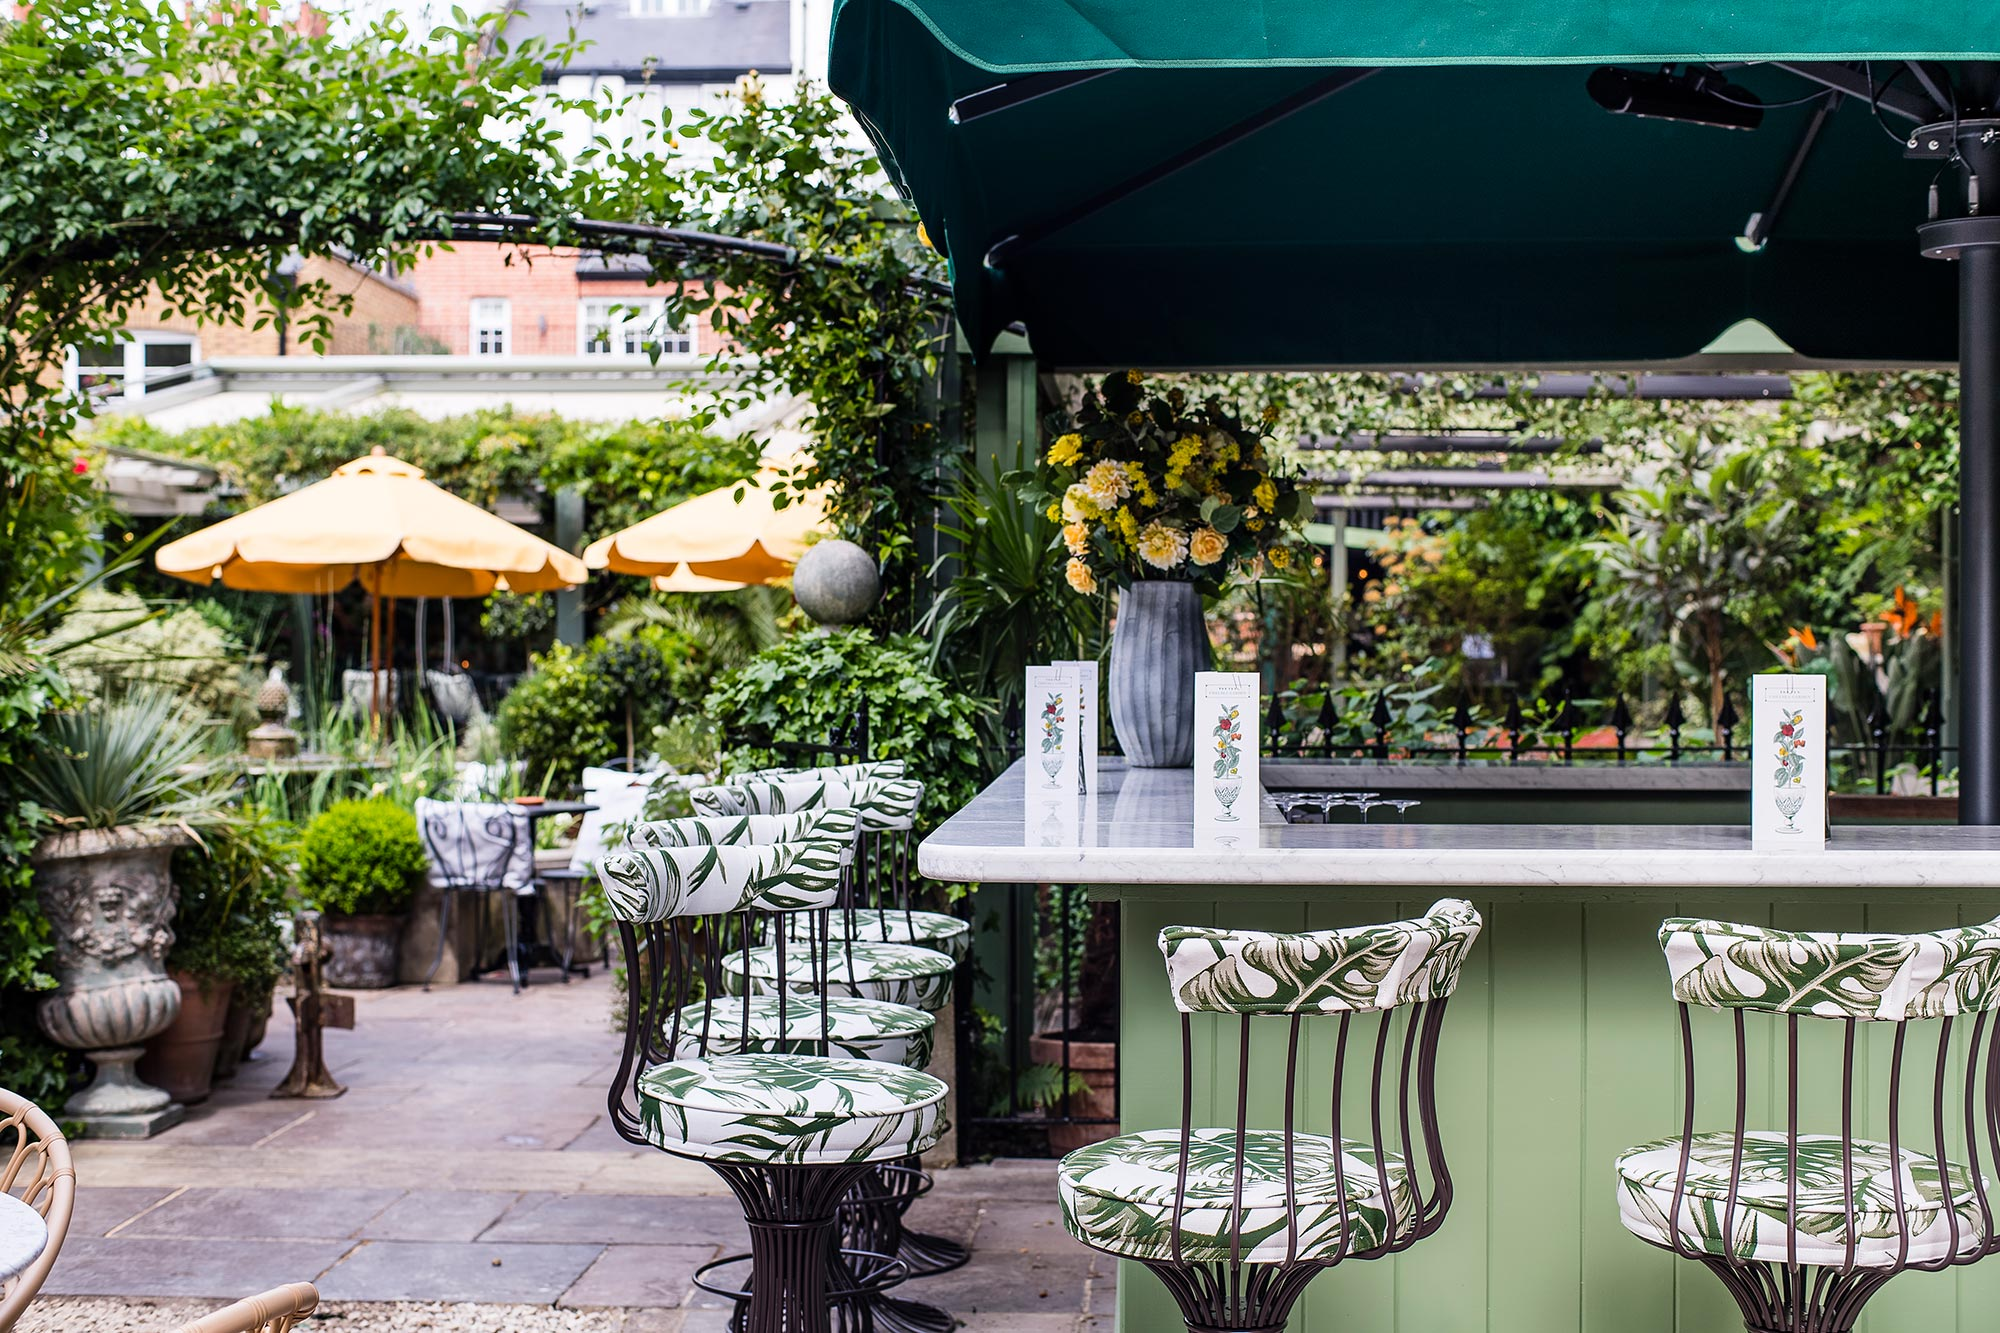 Restaurant with a Terrace in Chelsea, The Ivy Chelsea Garden - Al Fresco Dining on the King's Road, Chelsea - The Ivy Chelsea Garden